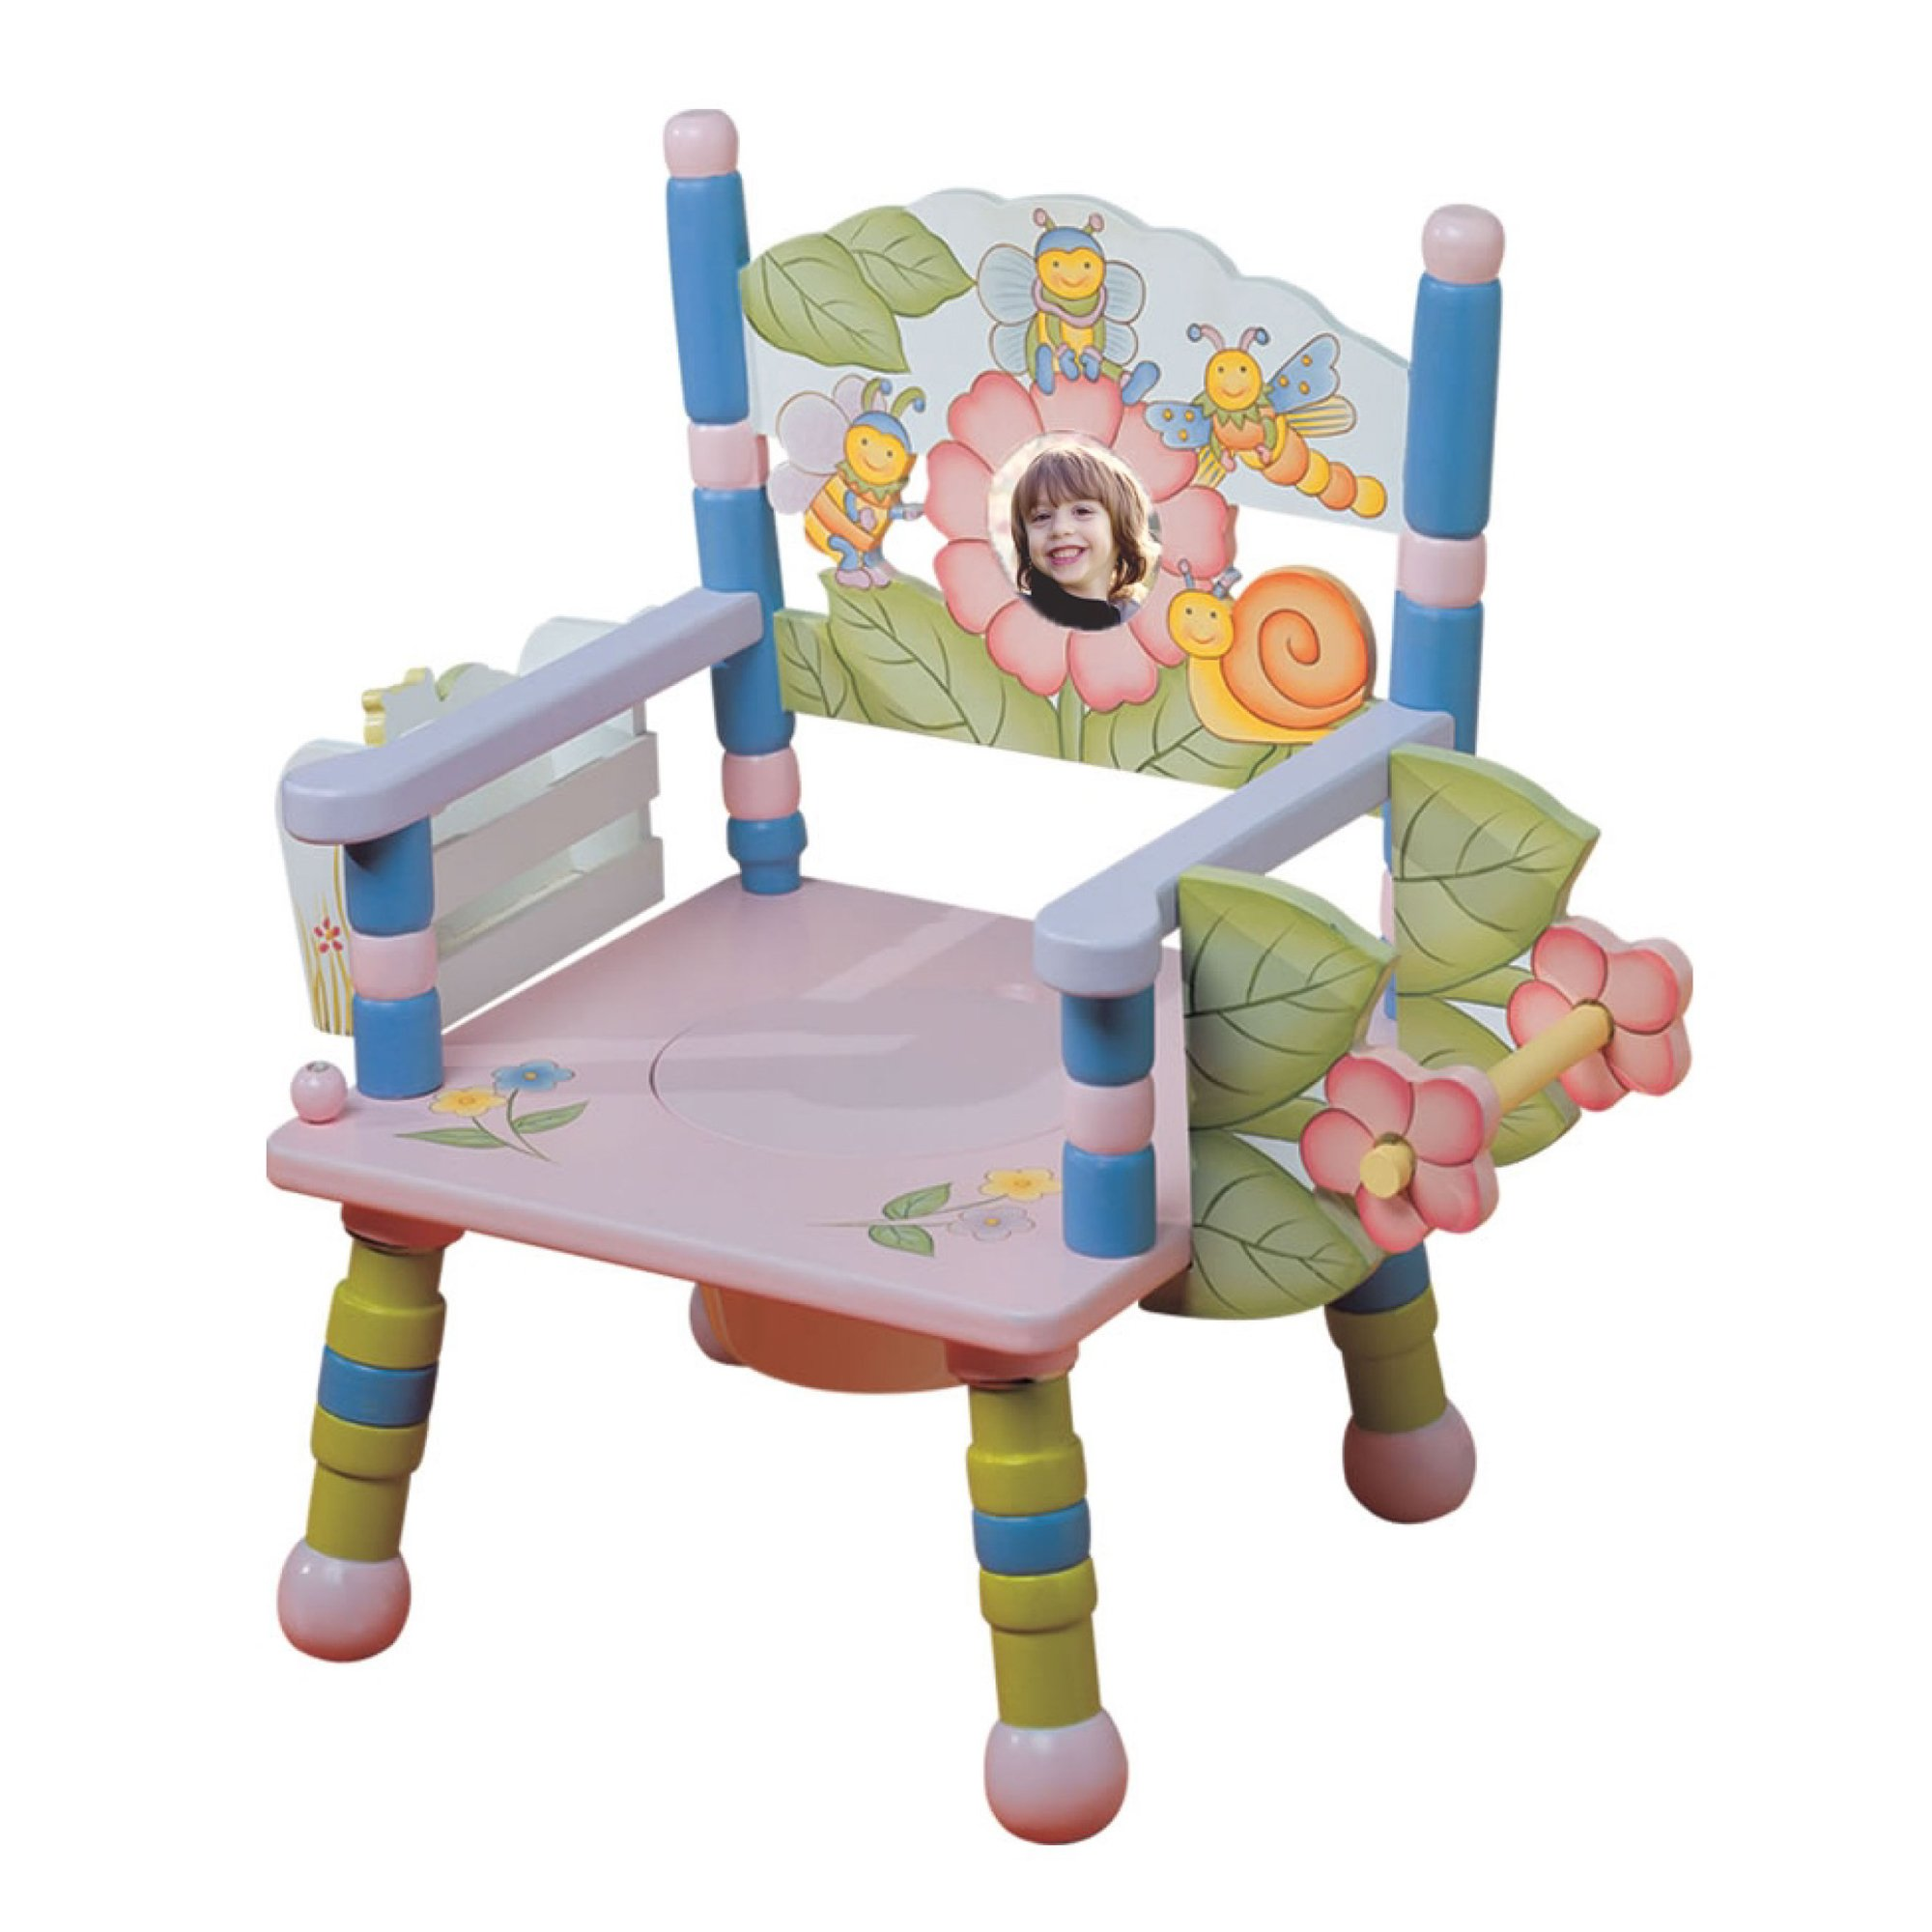 Teamson Kids - Musical Potty Chair with Book Holder and Toilet Paper Holder